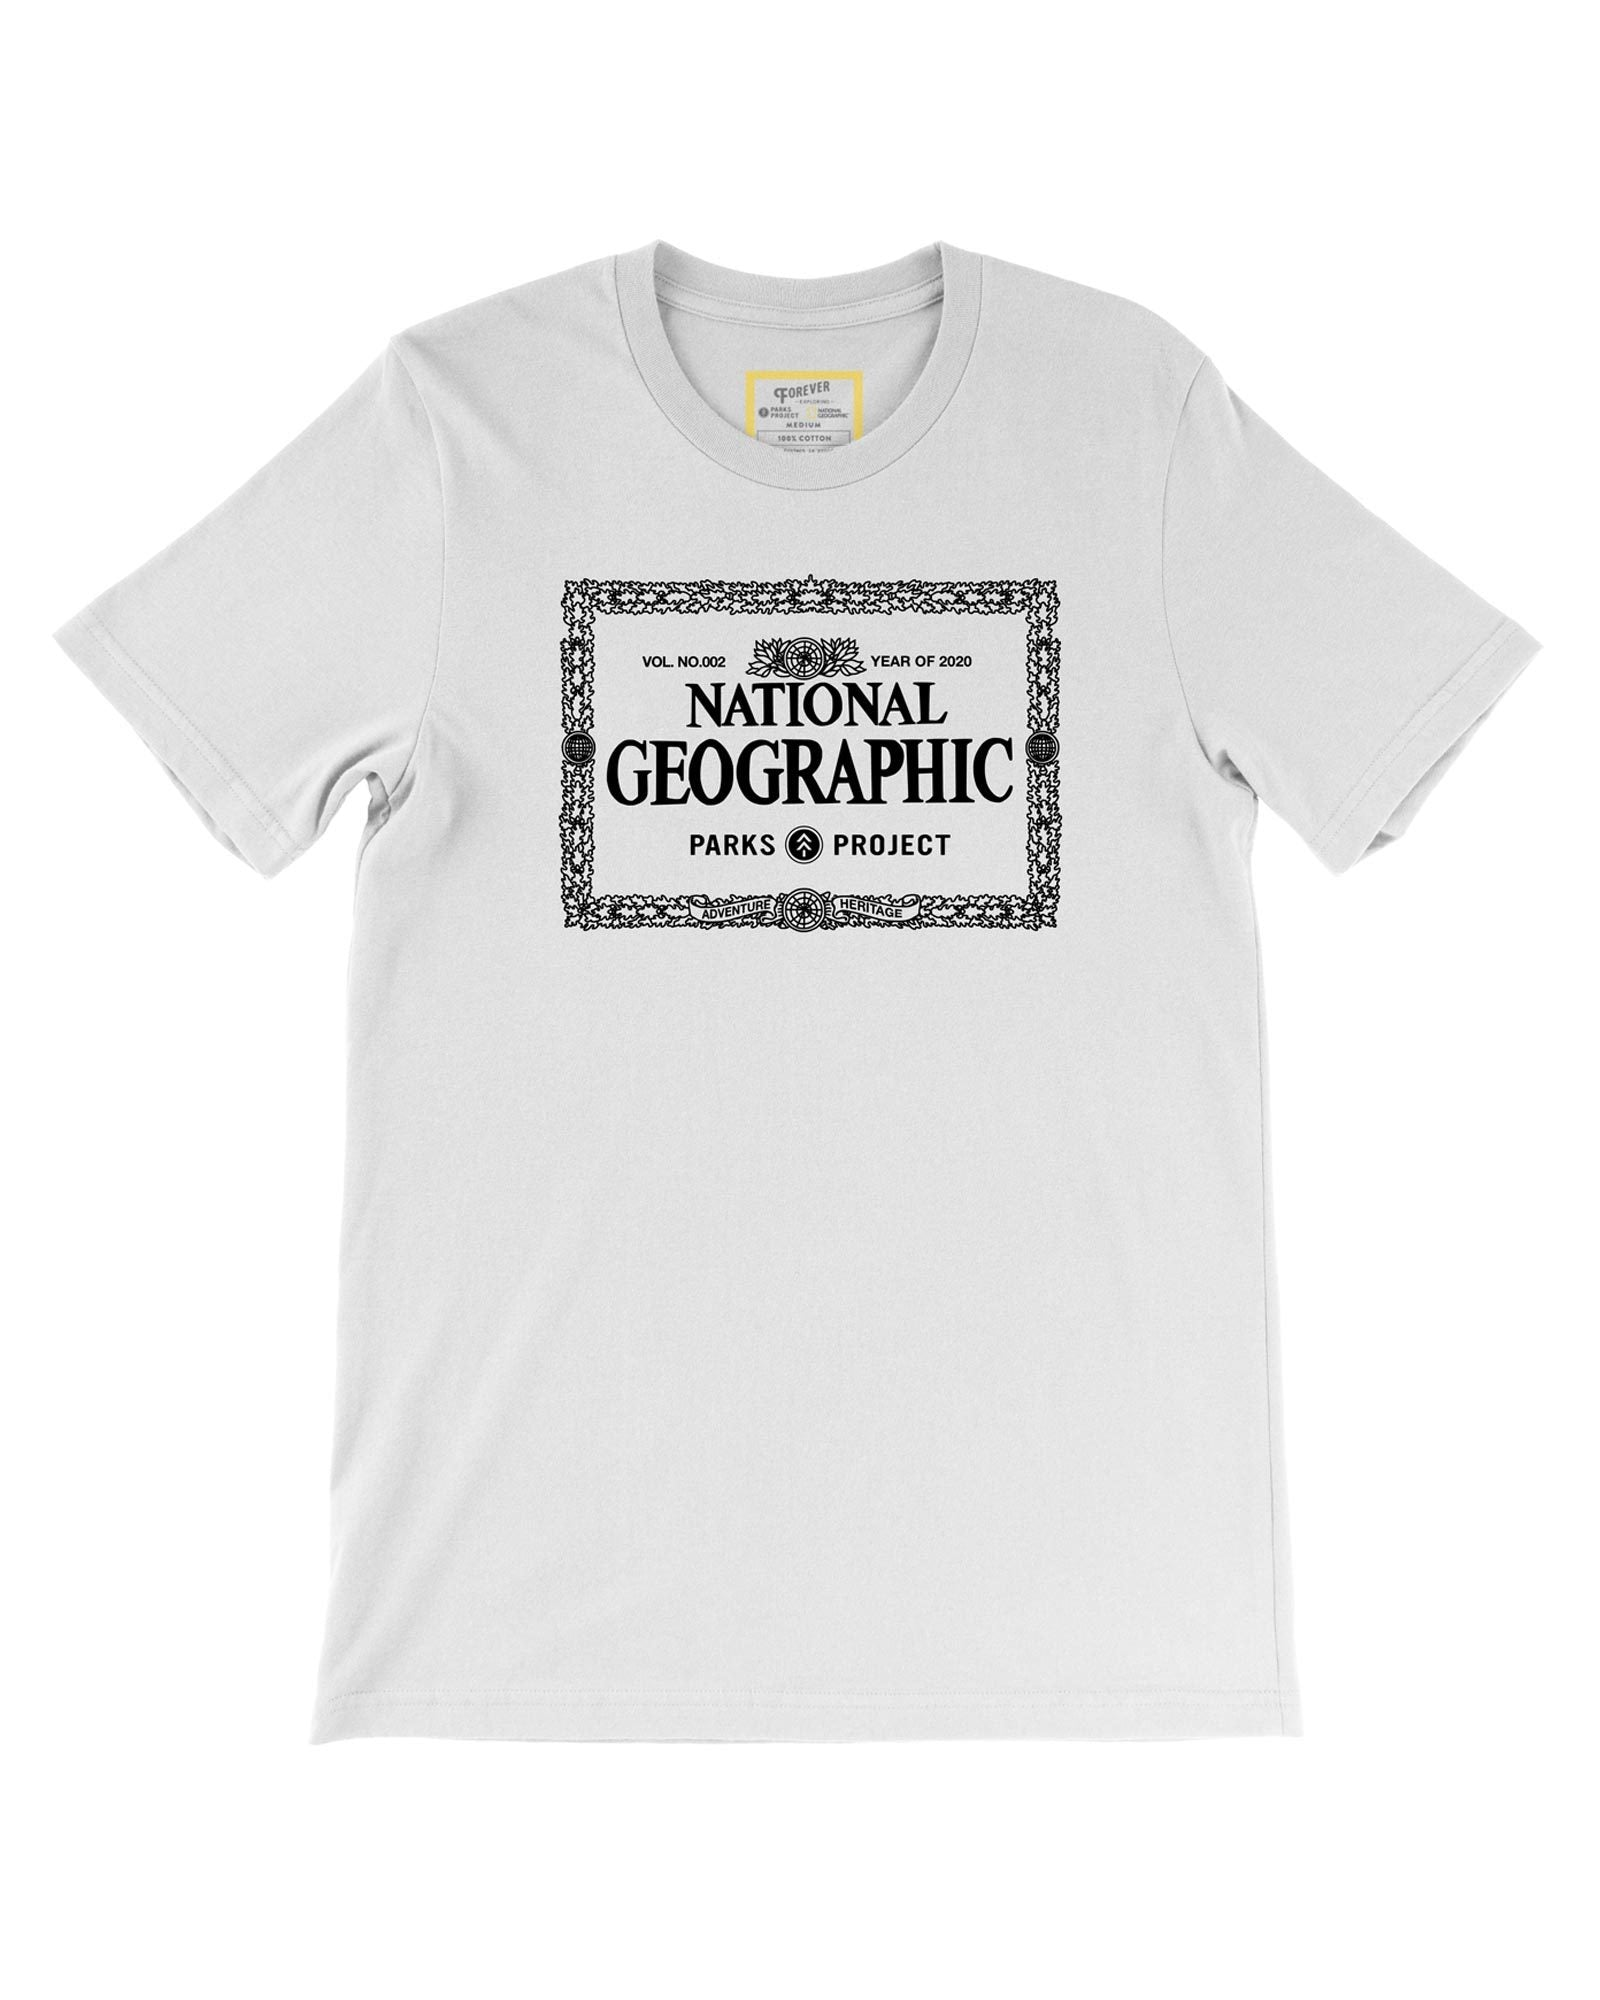 National Geographic x Parks Project Legacy Border Tee | Parks Project | National Park Tee